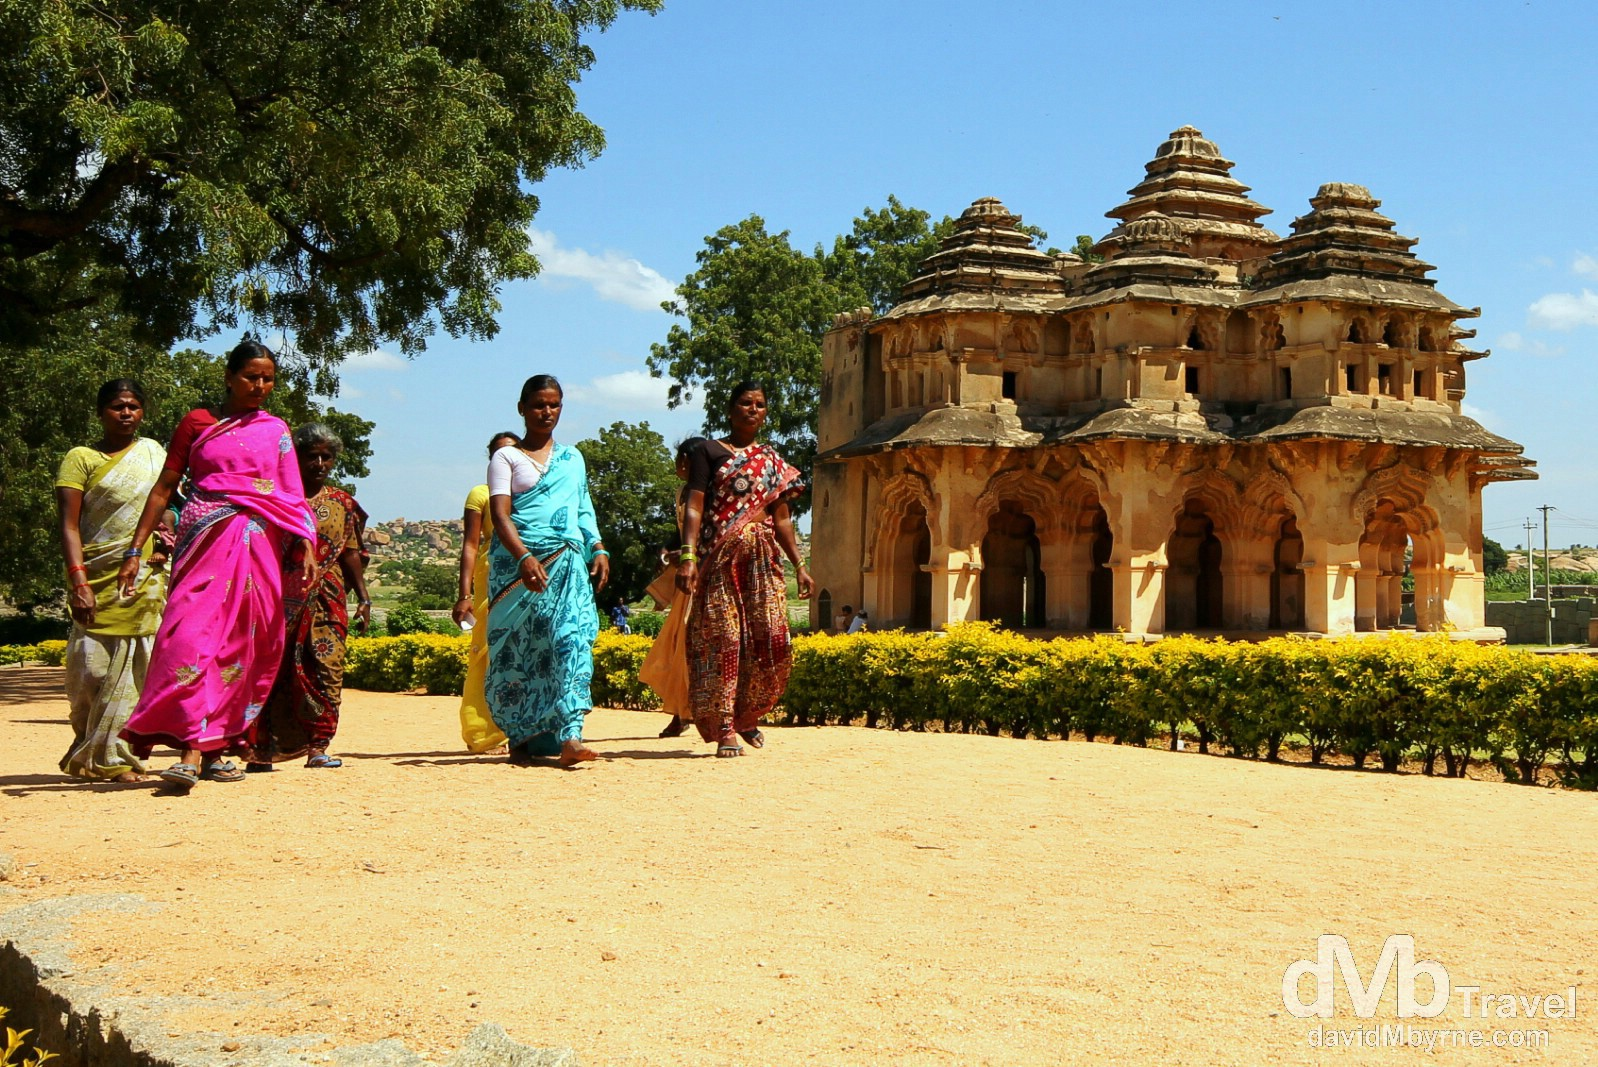 Walking in the The Royal Centre in view of the Lotus Palace. Hampi, Karnataka, India. September 24th 2012.